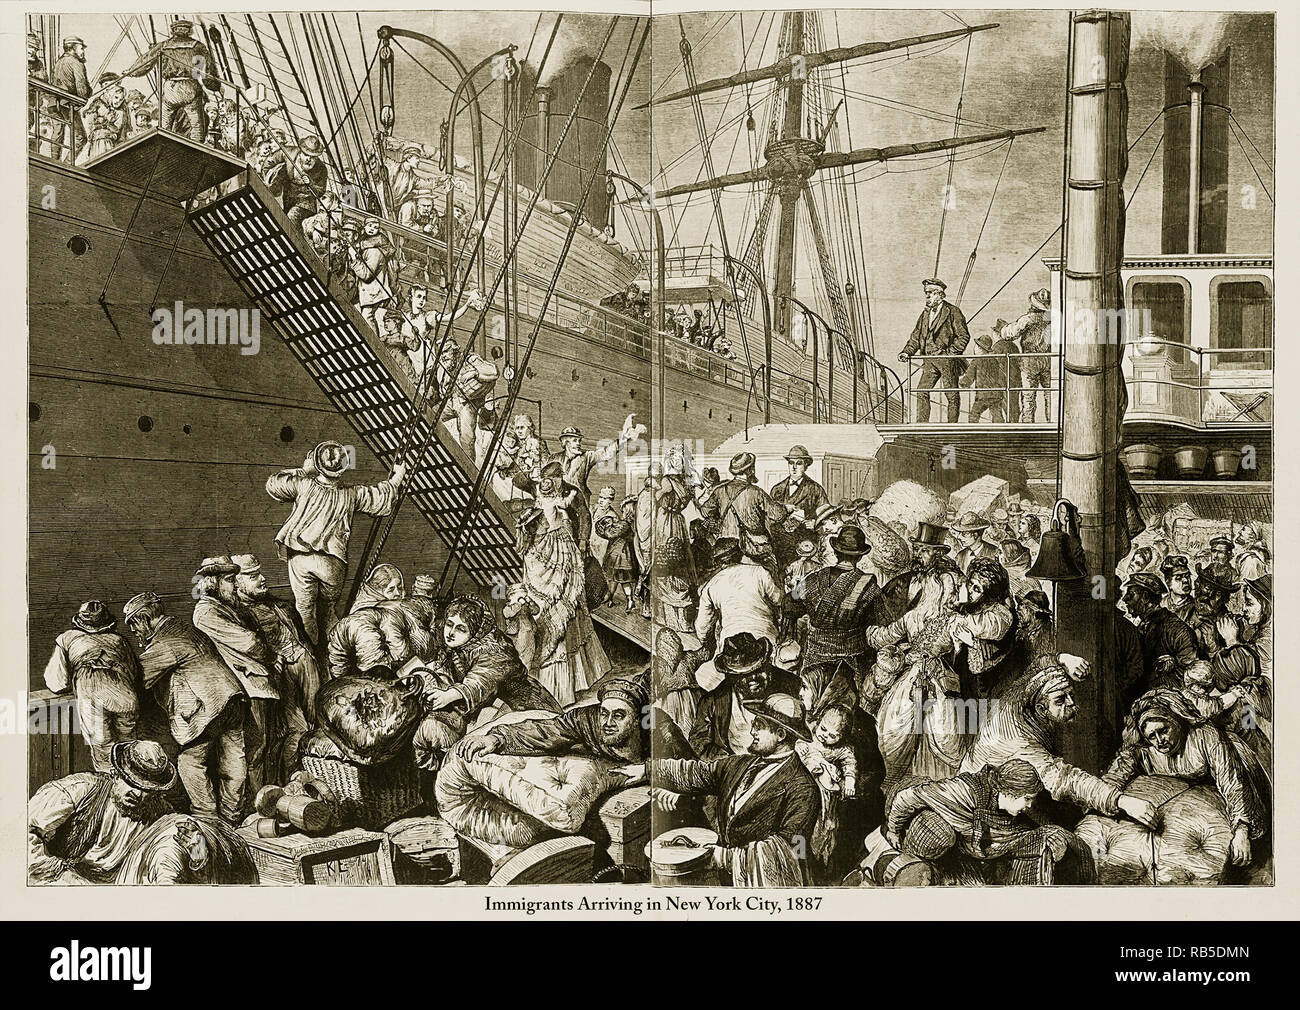 Immigrants Arriving In New York City 1887 Engraving Stock Photo